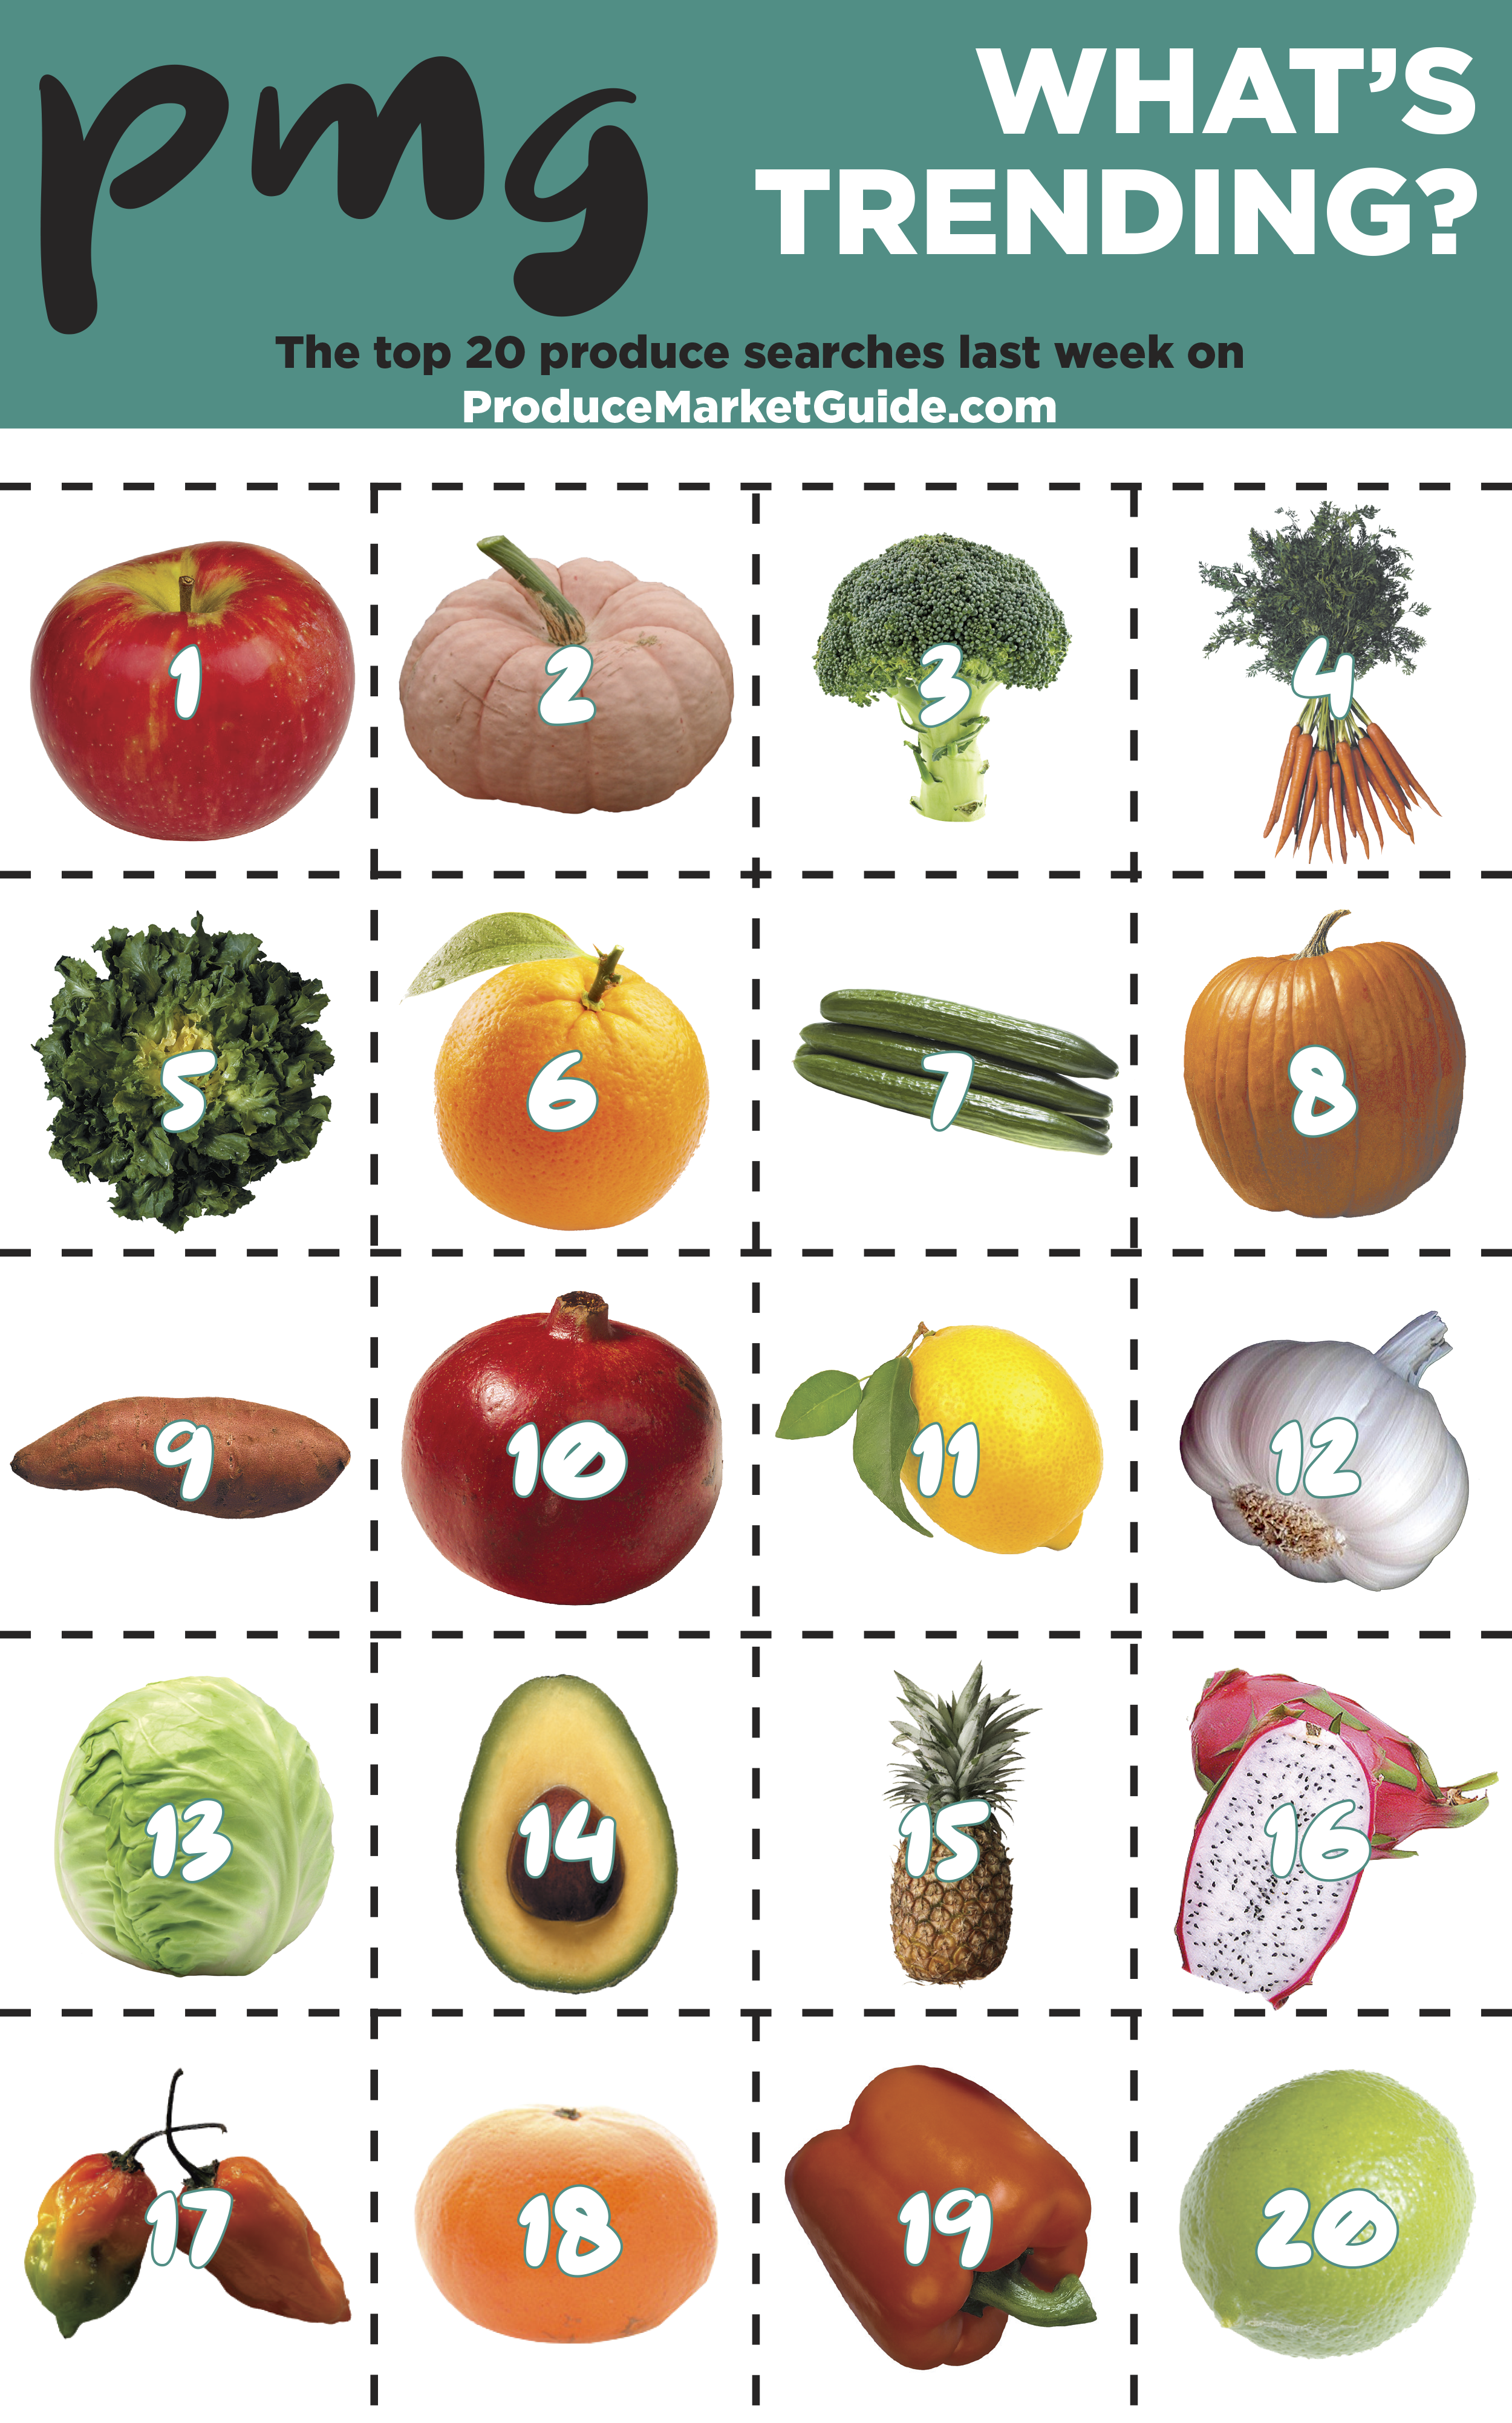 The top 20 fruit and vegetable searches on Produce Market Guide.